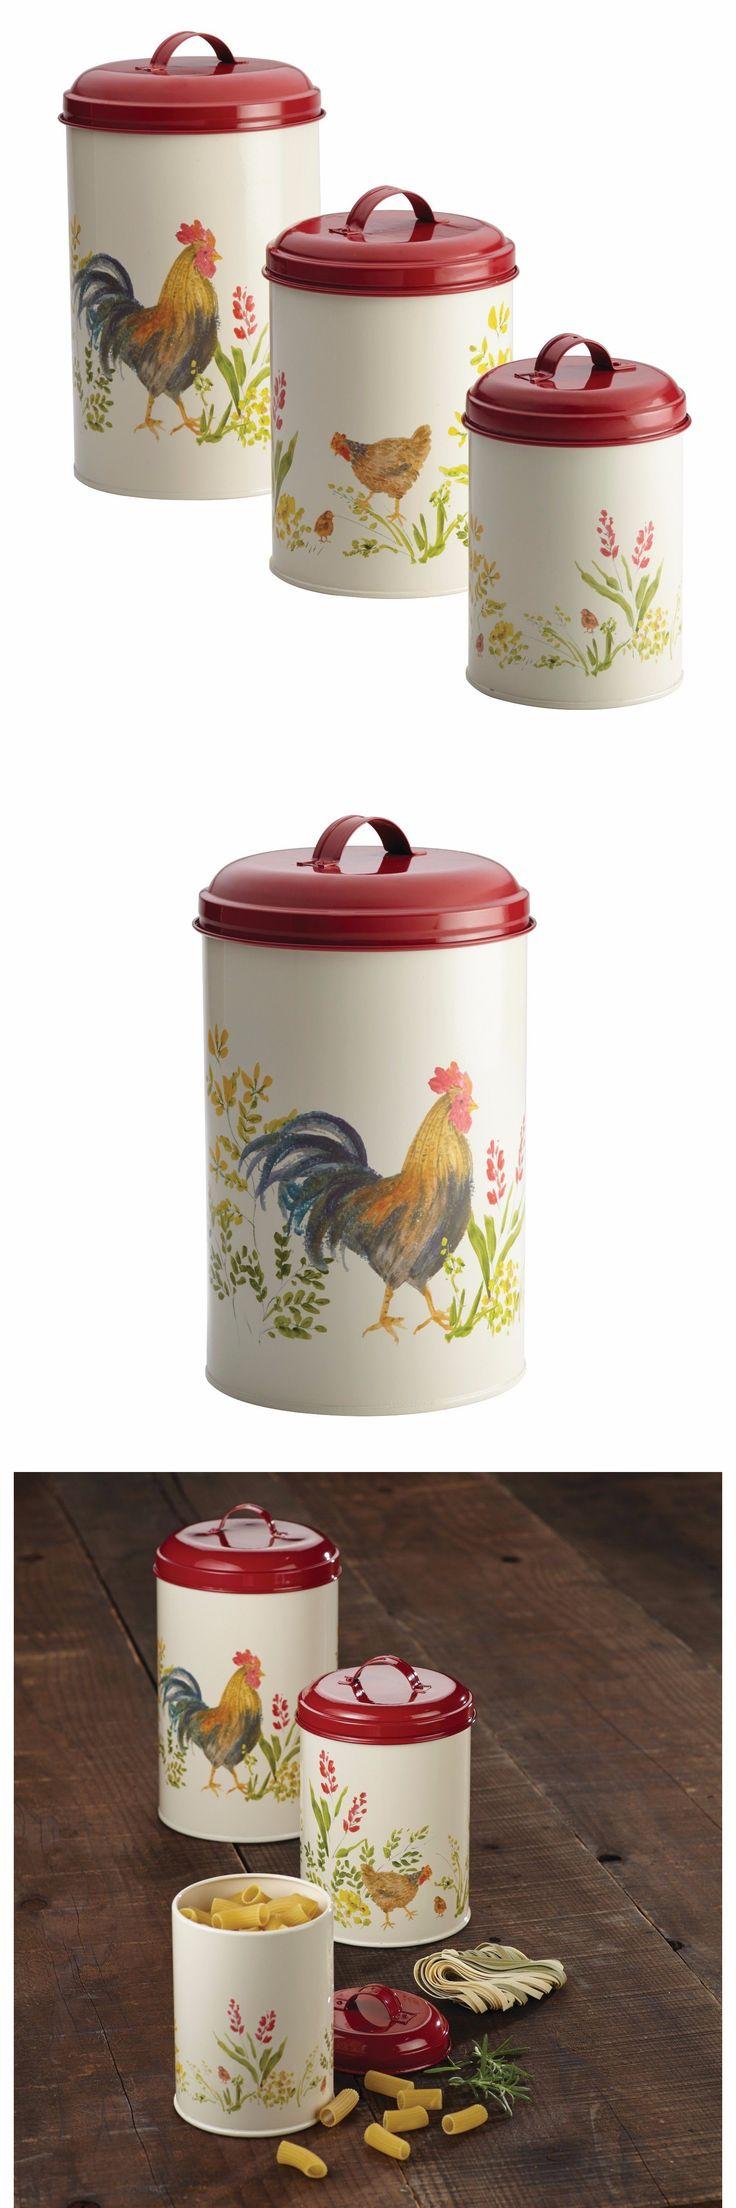 best 25 canisters for kitchen ideas on pinterest kitchen best 25 canisters for kitchen ideas on pinterest kitchen canisters and jars country kitchen decorating and farmhouse bathroom canisters